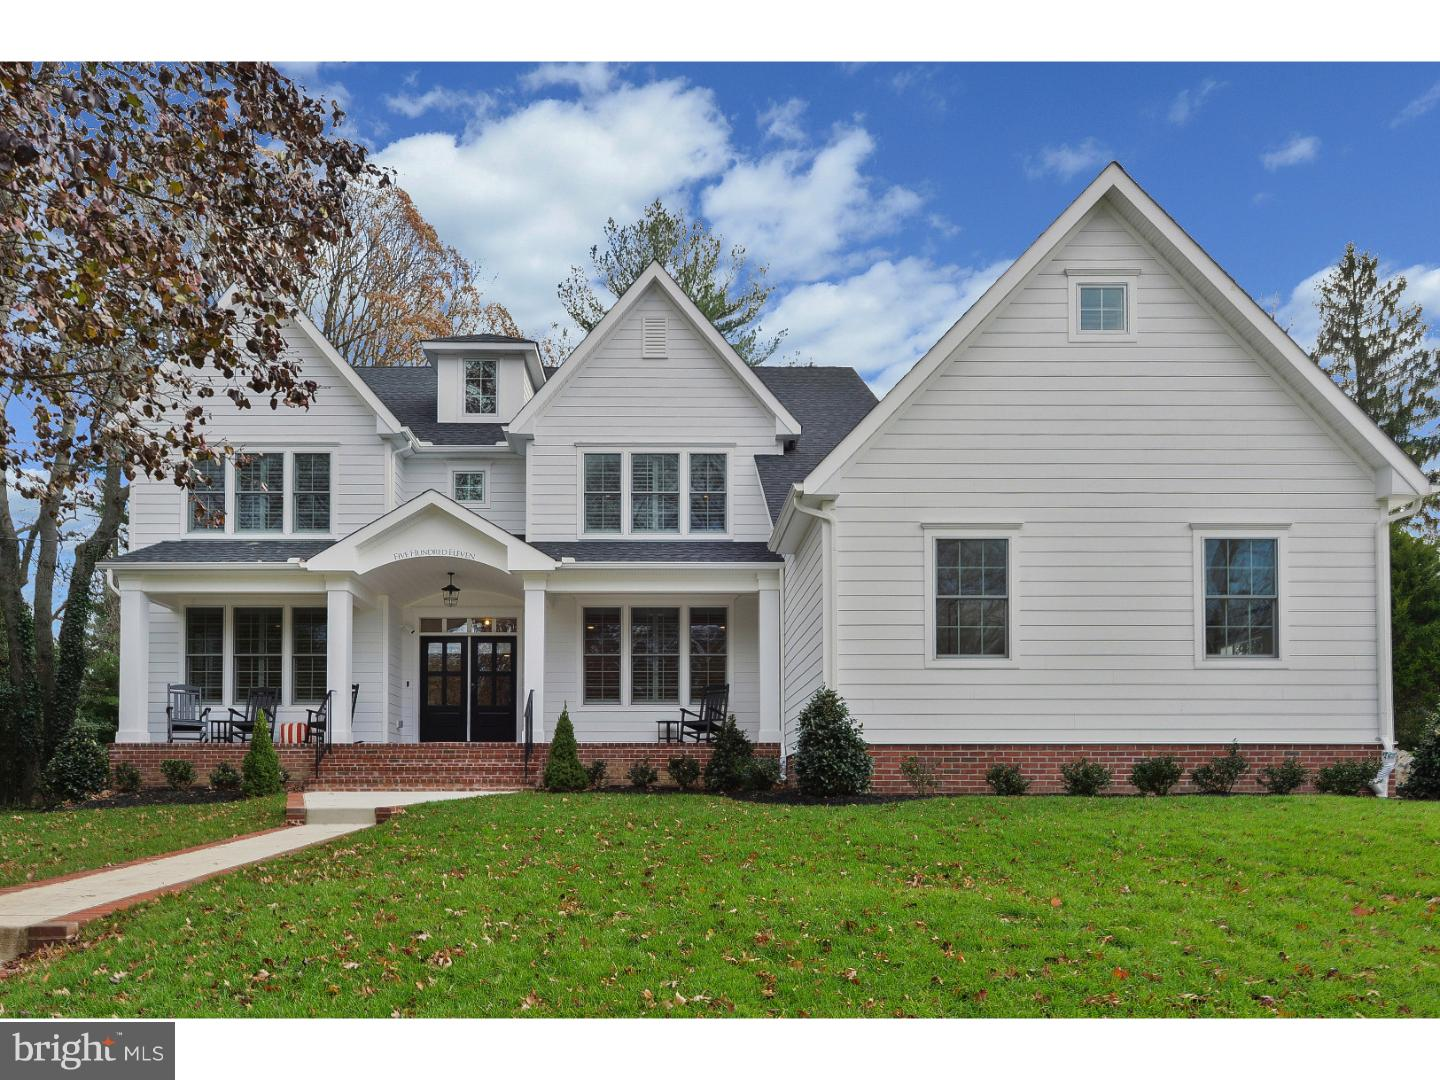 Single Family Home for Sale at 511 WESTMINSTER Avenue Haddonfield, New Jersey 08033 United StatesMunicipality: Haddonfield